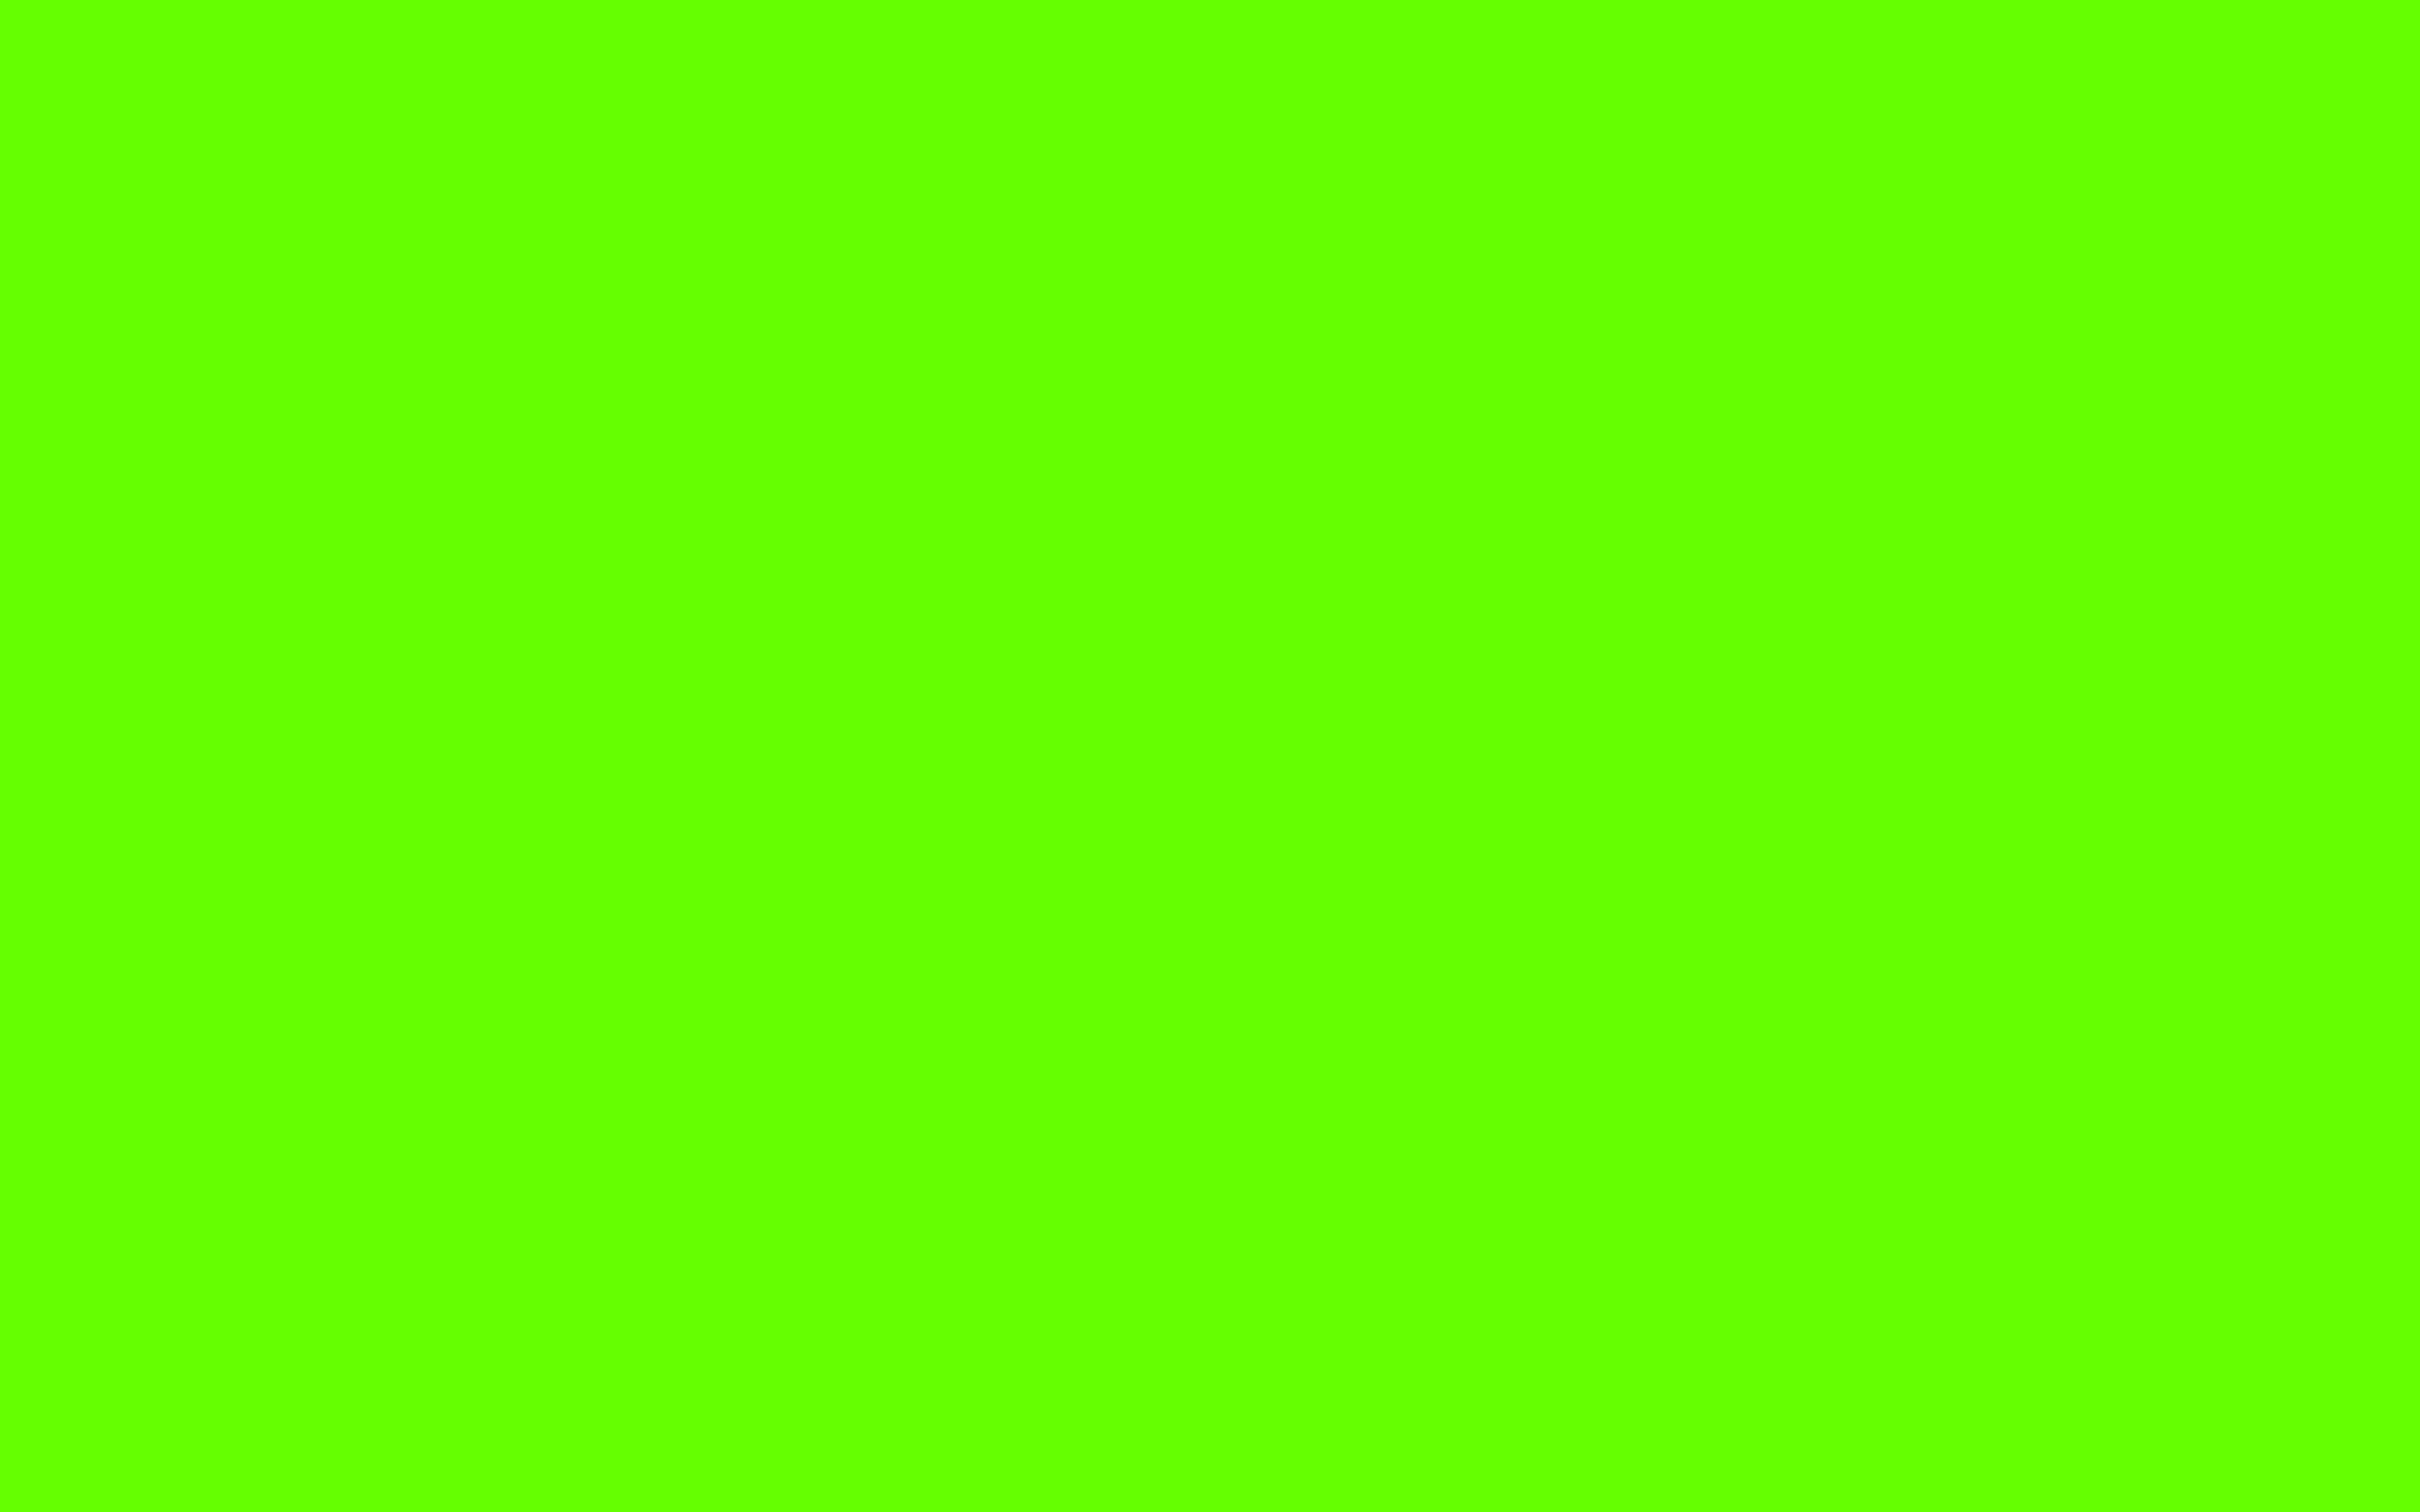 lime green backgrounds 55 pictures